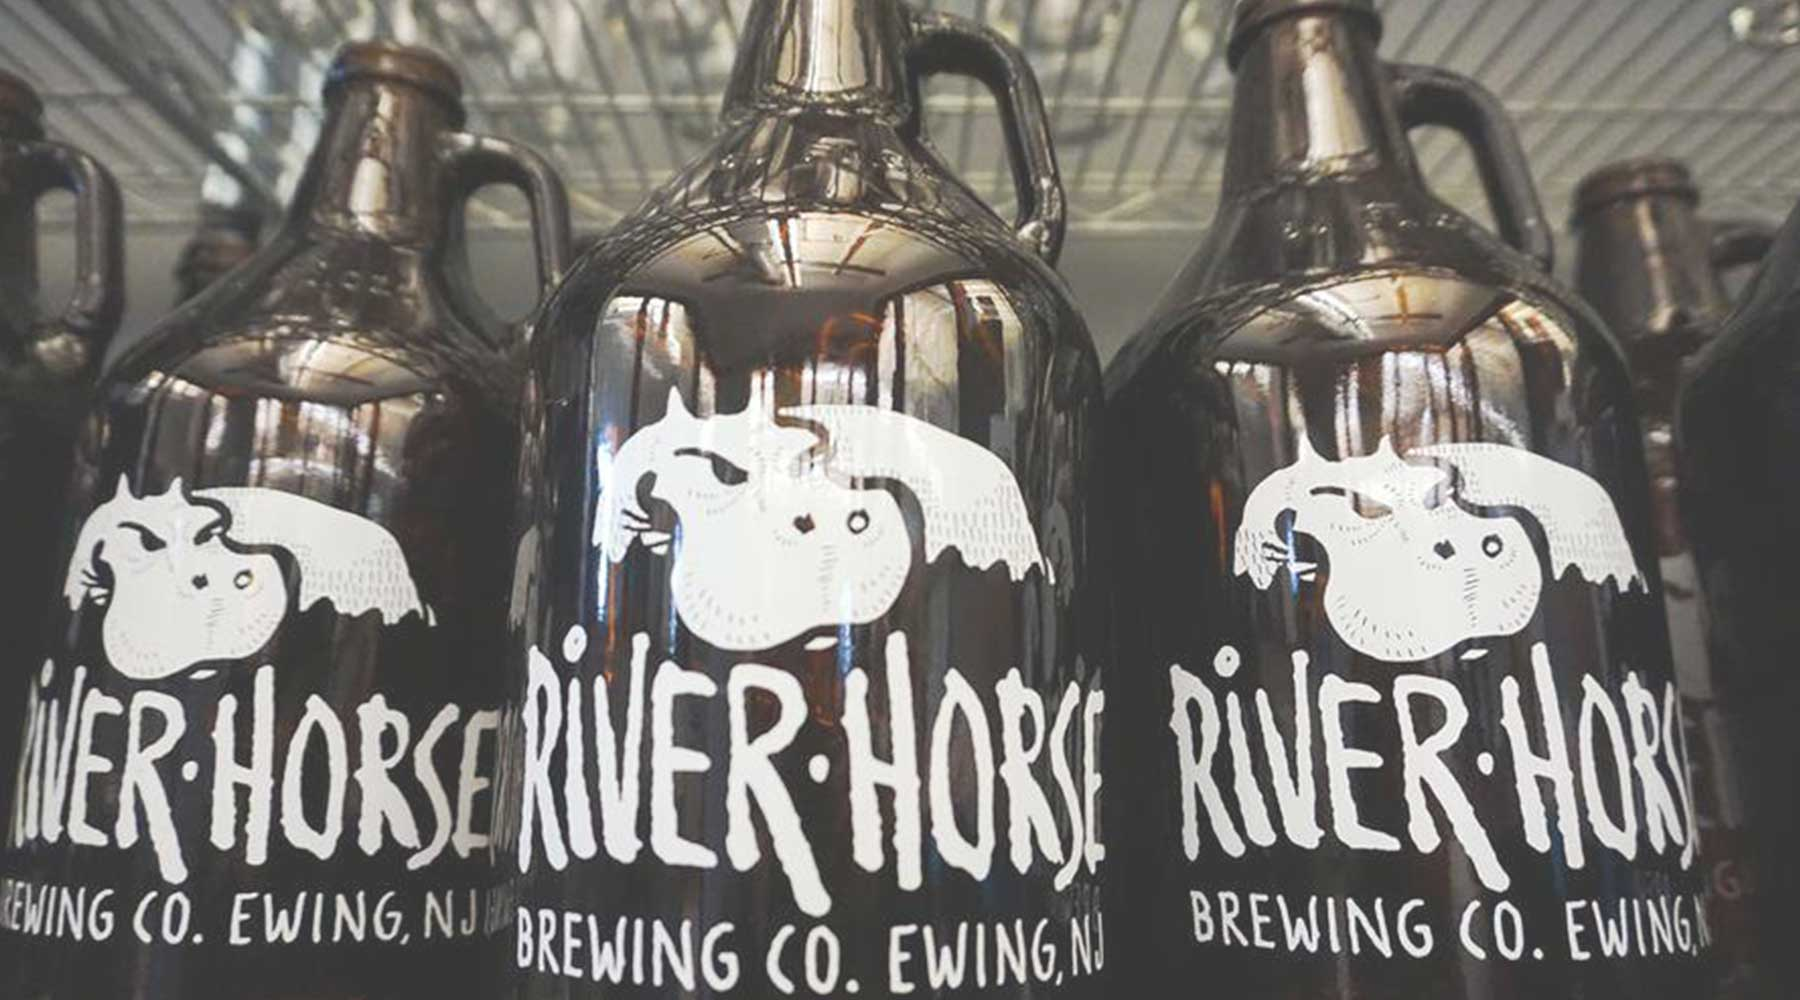 River Horse Brewing Company   Just Wine